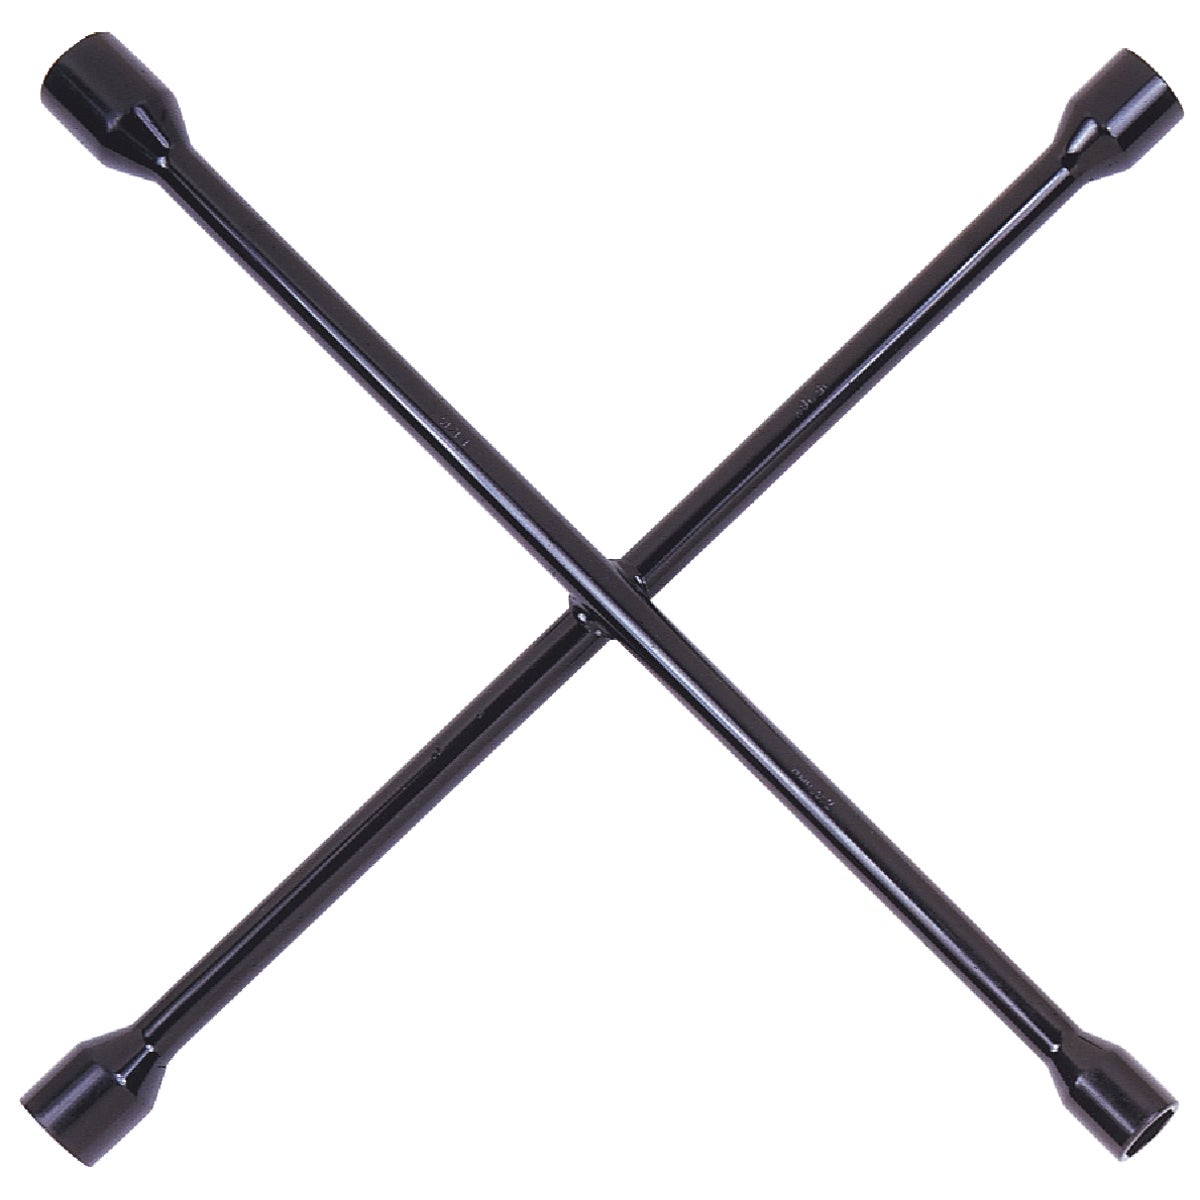 "22"" 4-WAY LUG WRENCH"